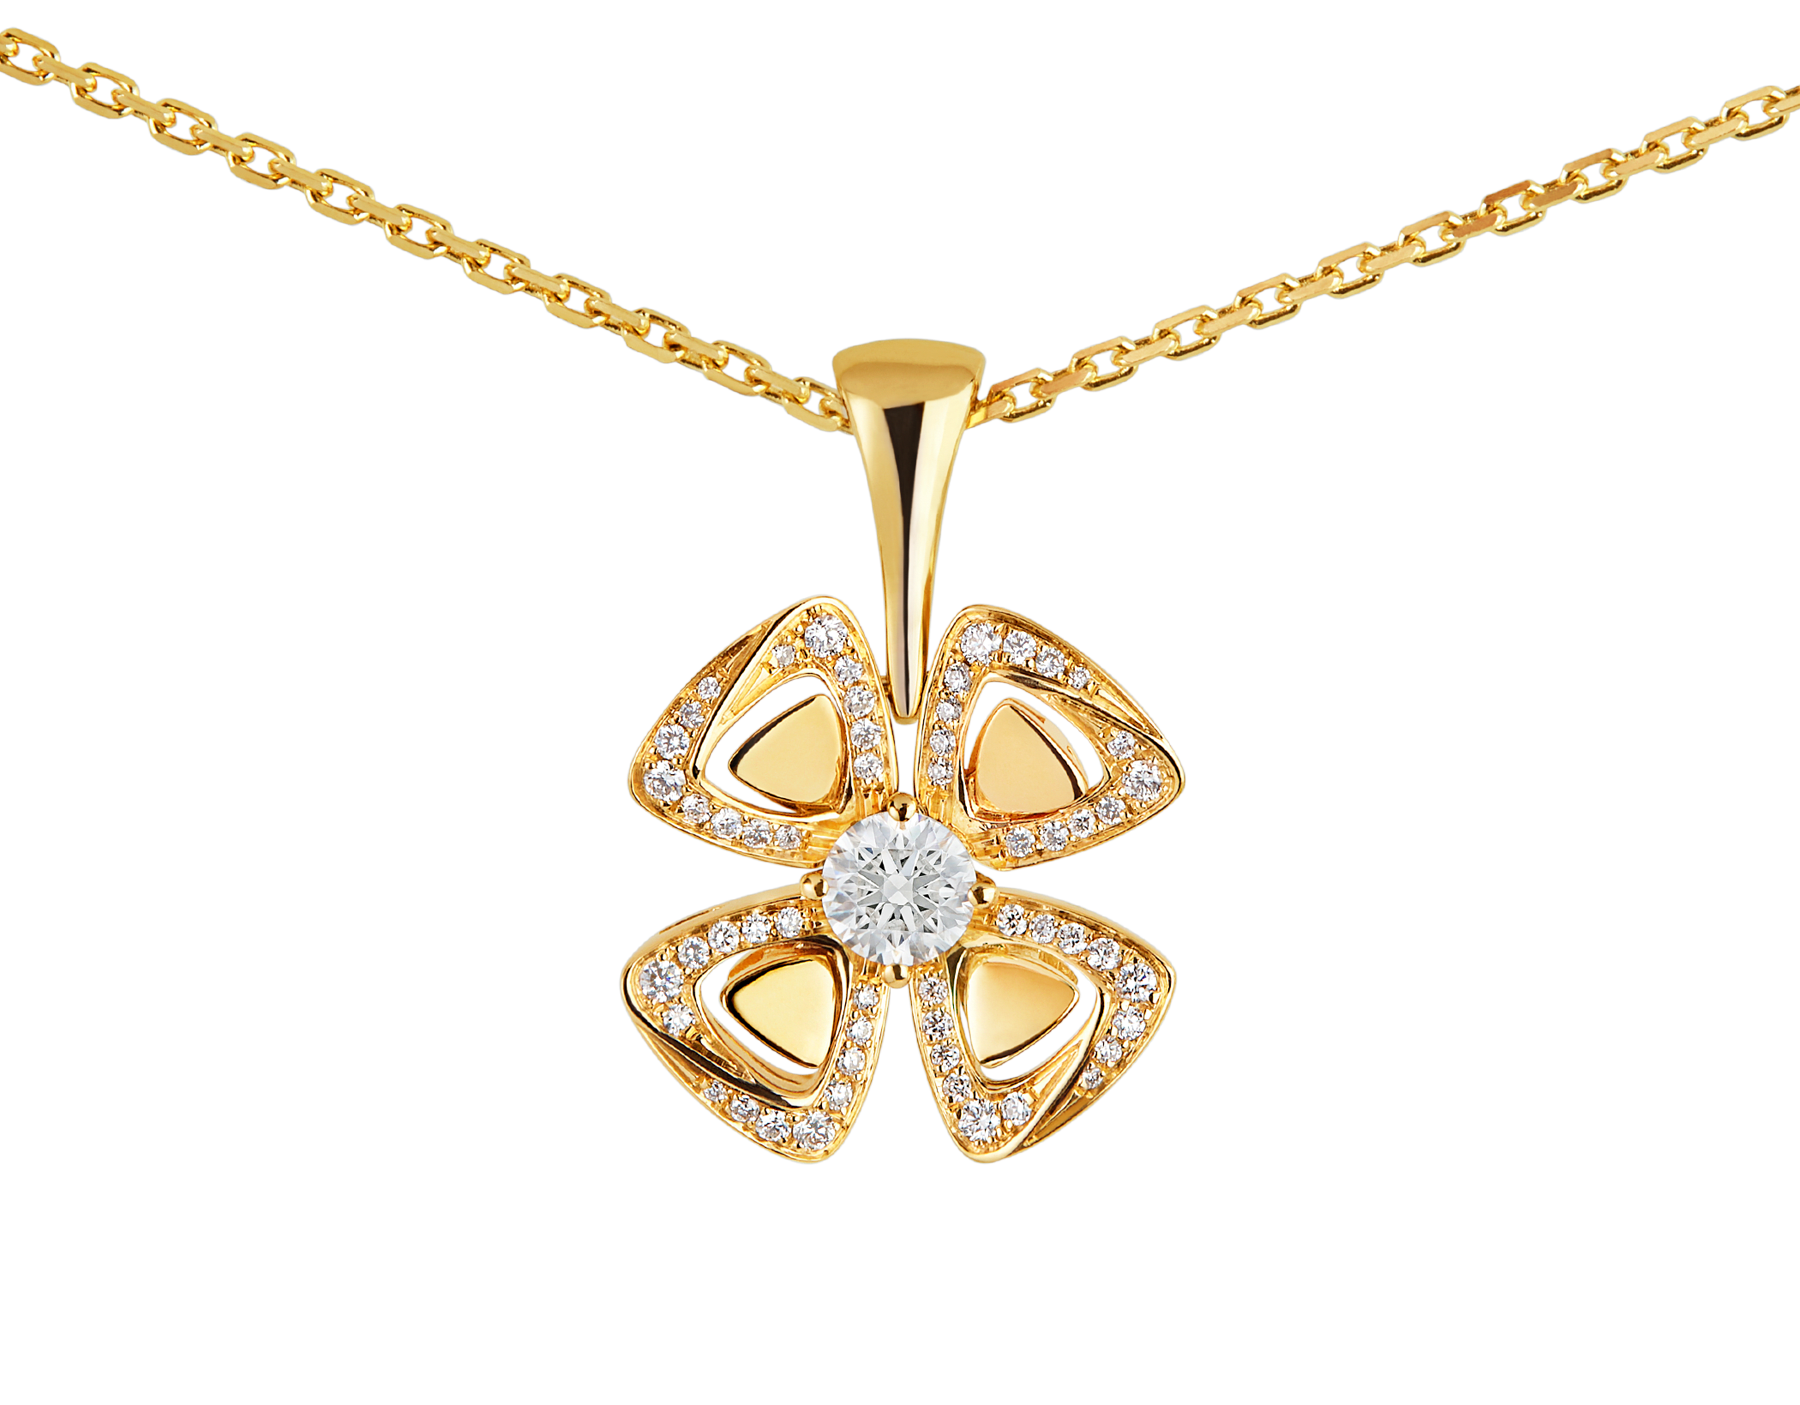 Fiorever 18 kt yellow gold necklace set with a central diamond and pavé diamonds. 357504 image 3